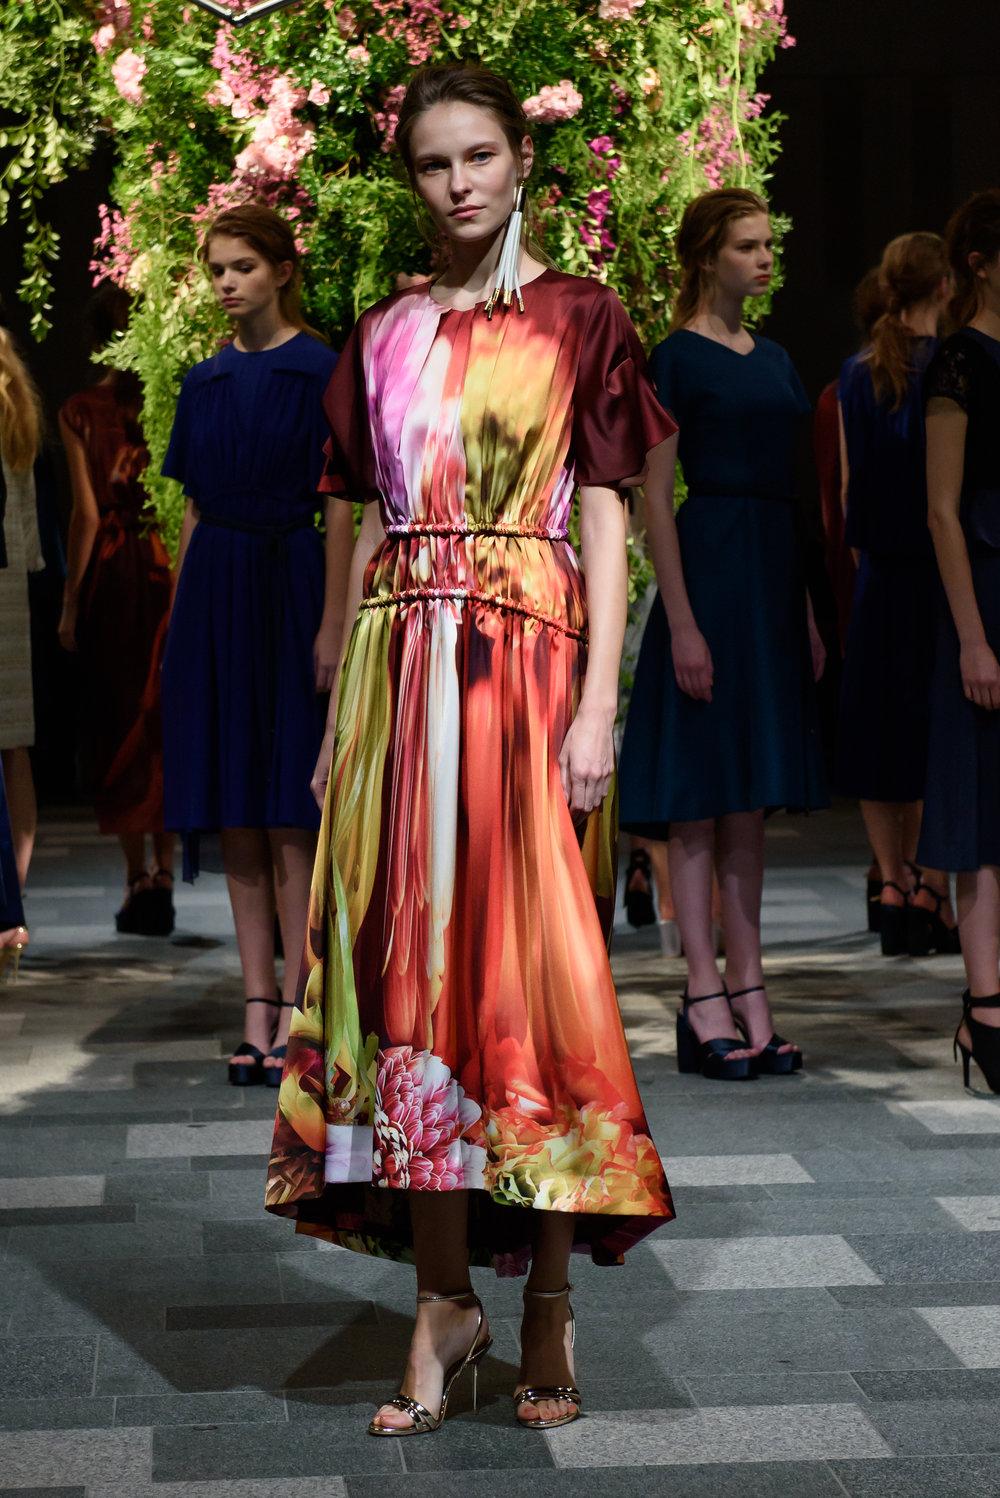 Florabunda - An enormous bouquet of fresh flowers served as an oversized centerpiece as deconstructed floral prints made their way around the runway presentation space at the Hanae Mori Manuscrit Spring 2018 show.